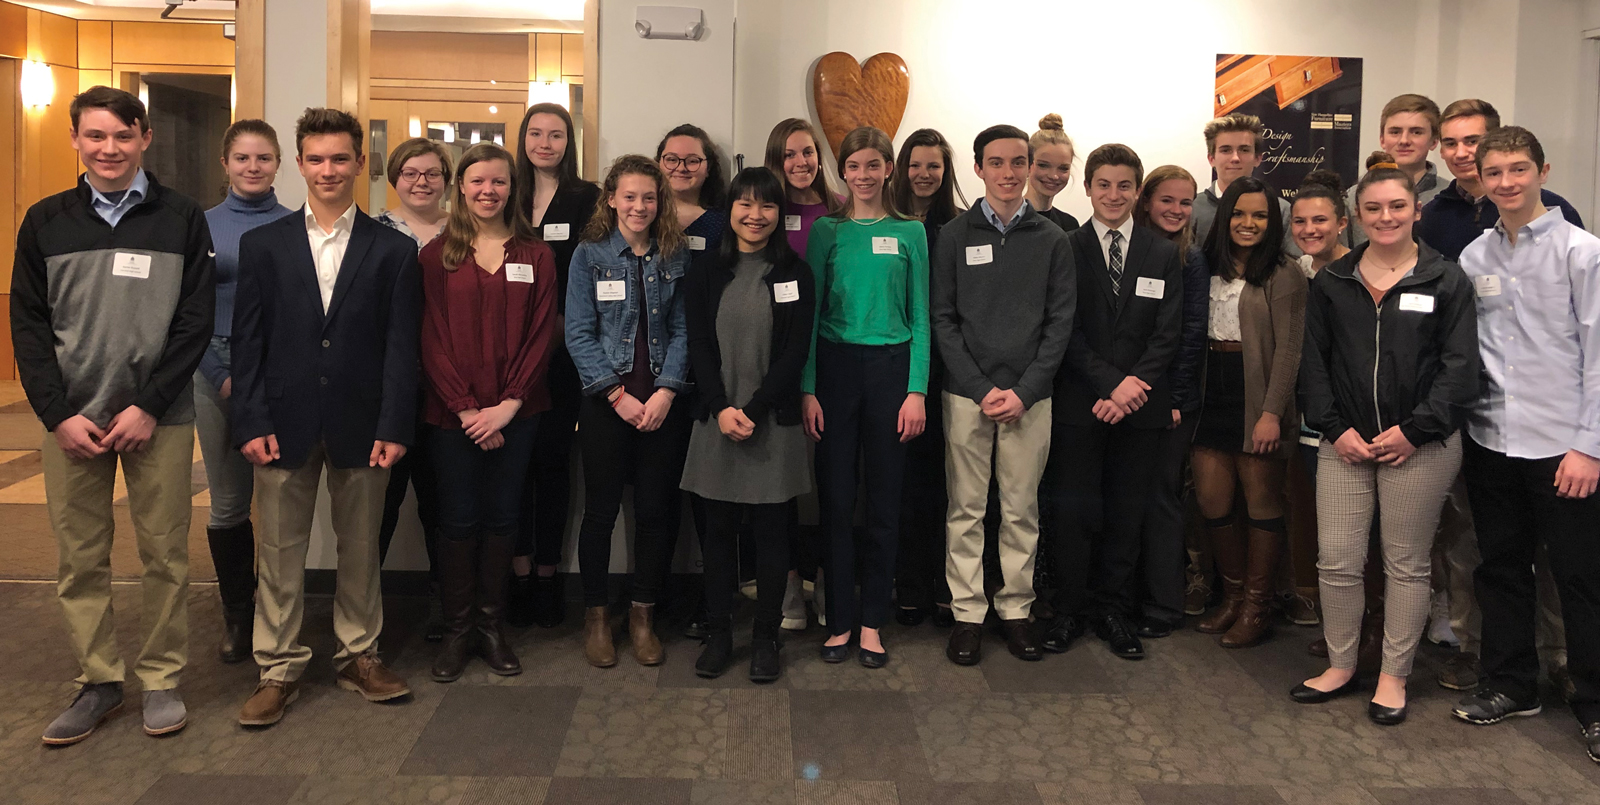 The Greater Concord Chamber of Commerce recently welcomed 24 students from eight Capital region schools selected to take part in the Chamber's highly competitive 2019 Capital Area Student Leadership program, the state's only regional student leadership and civics course offered annually by the Chamber for high school sophomores in the Greater Concord area.